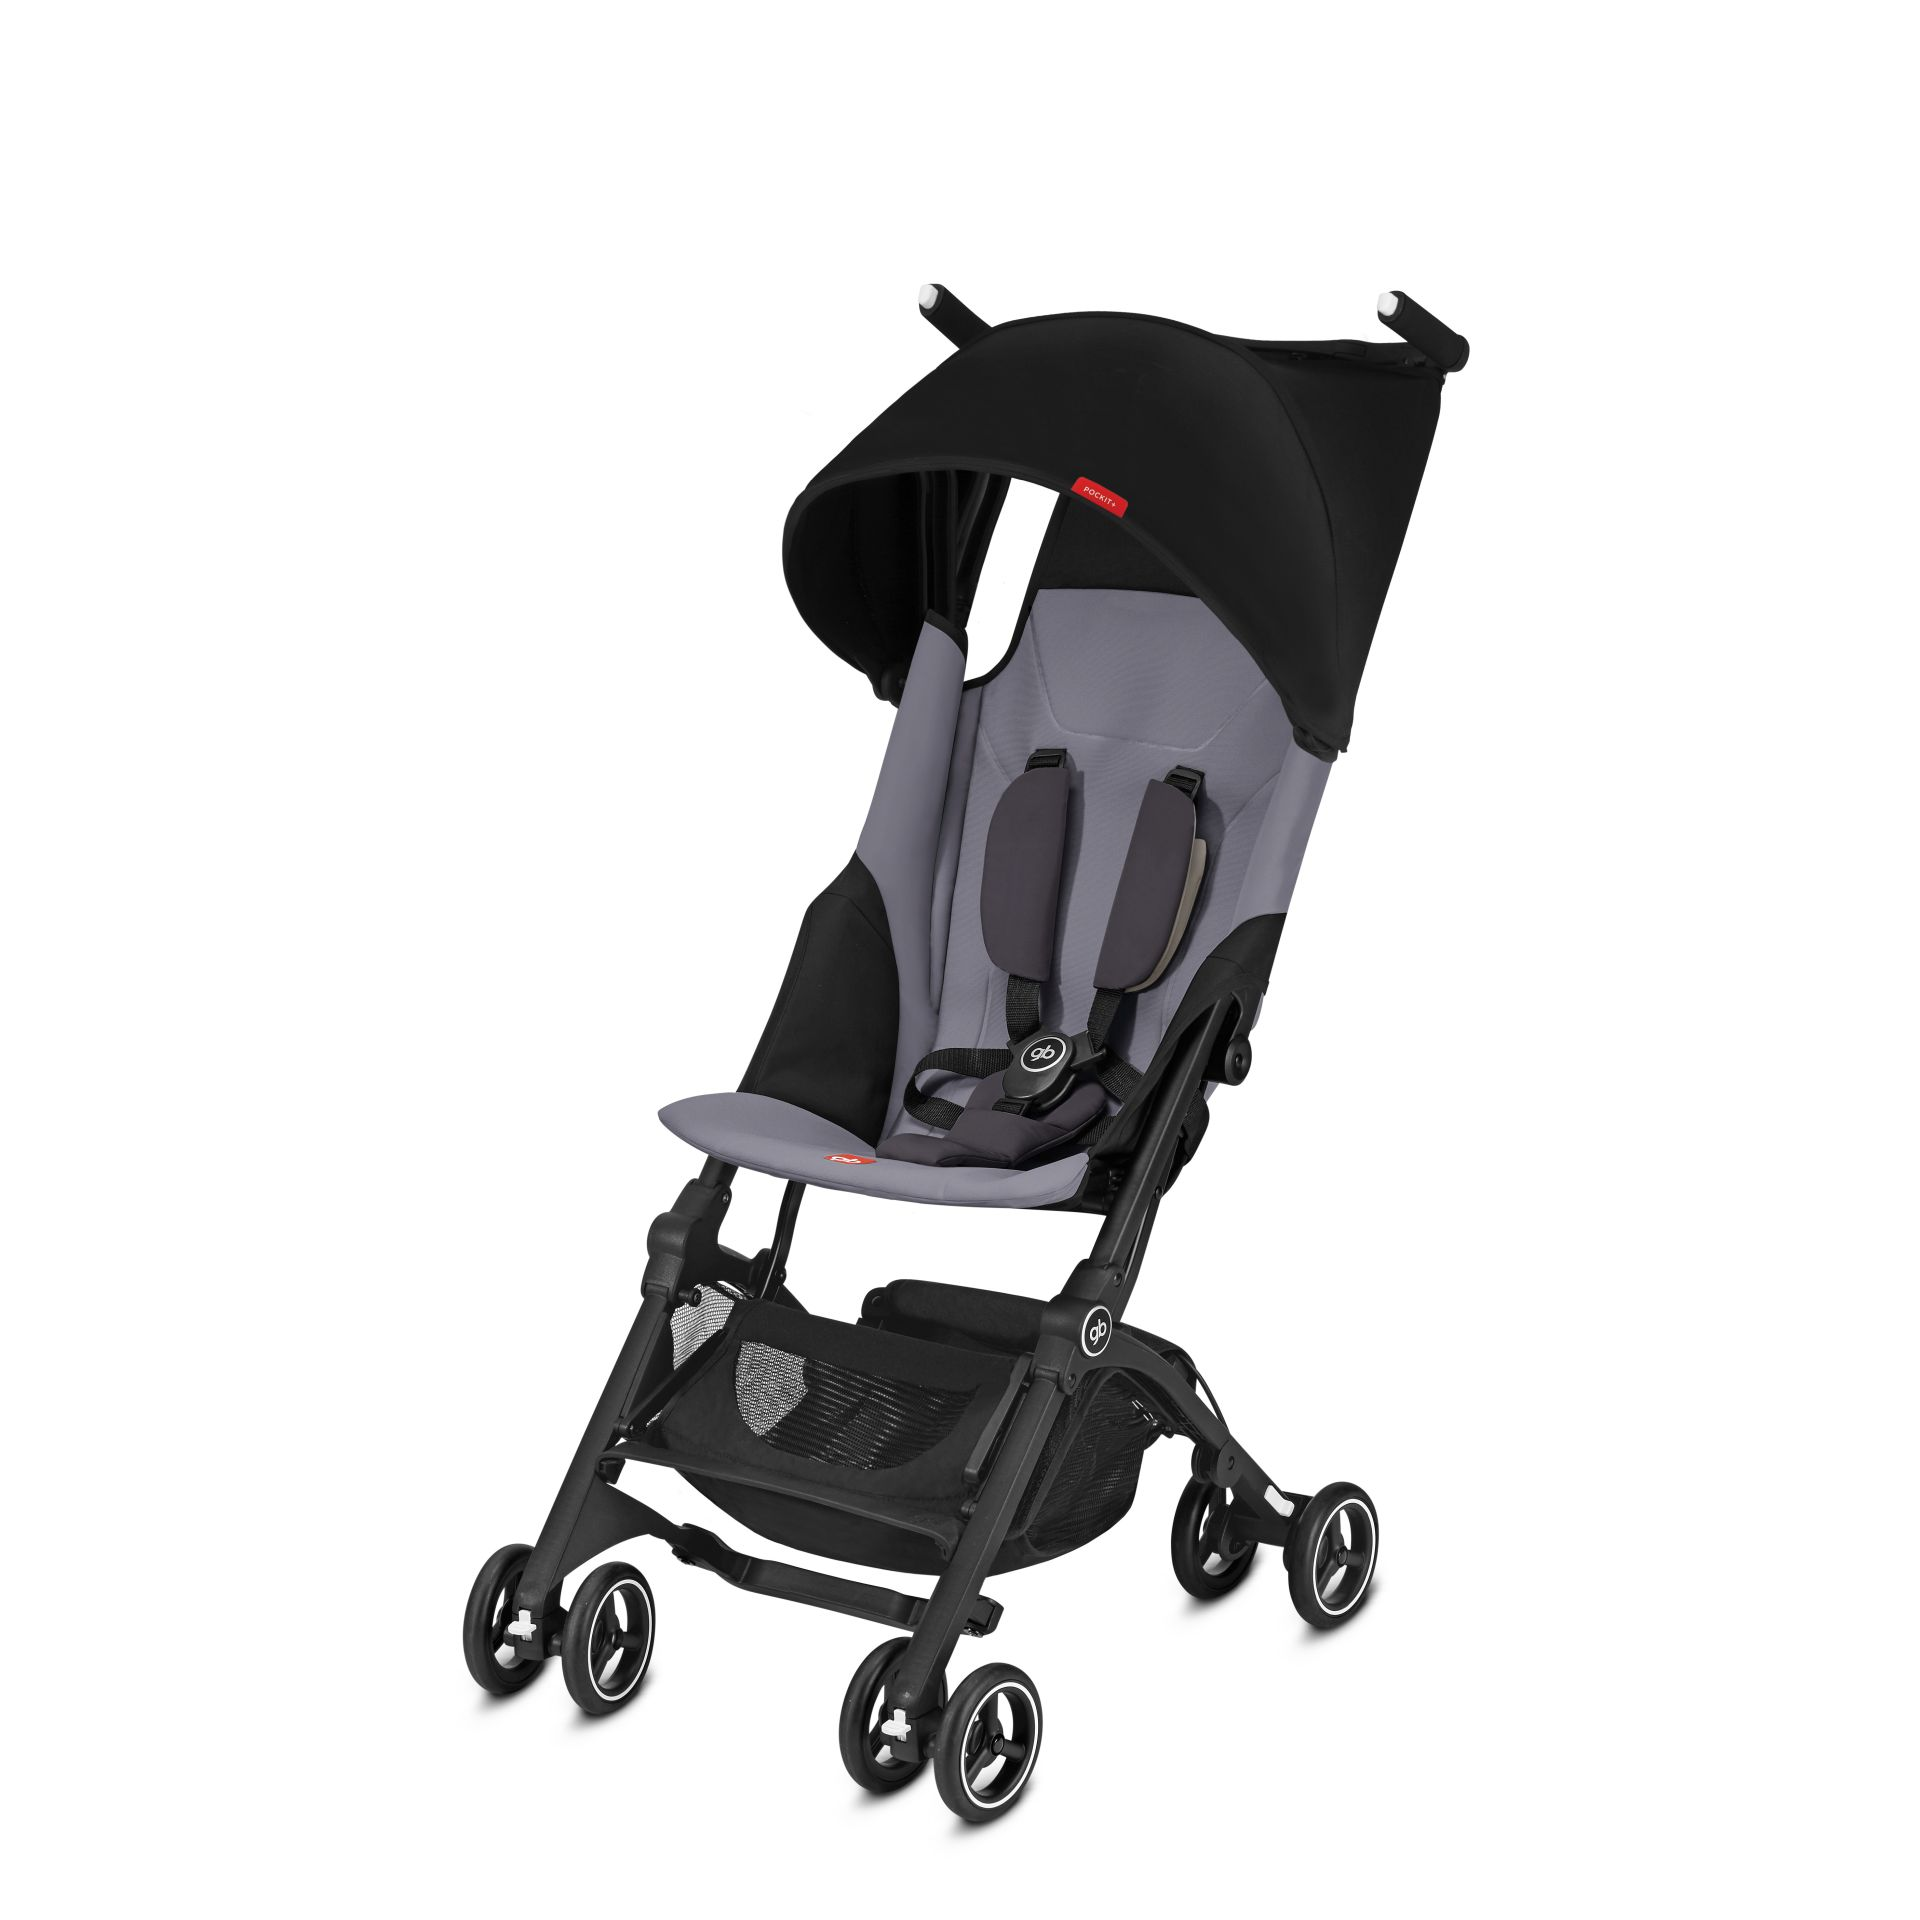 Cybex Buggy Liegeposition Gb By Cybex Buggy Pockit